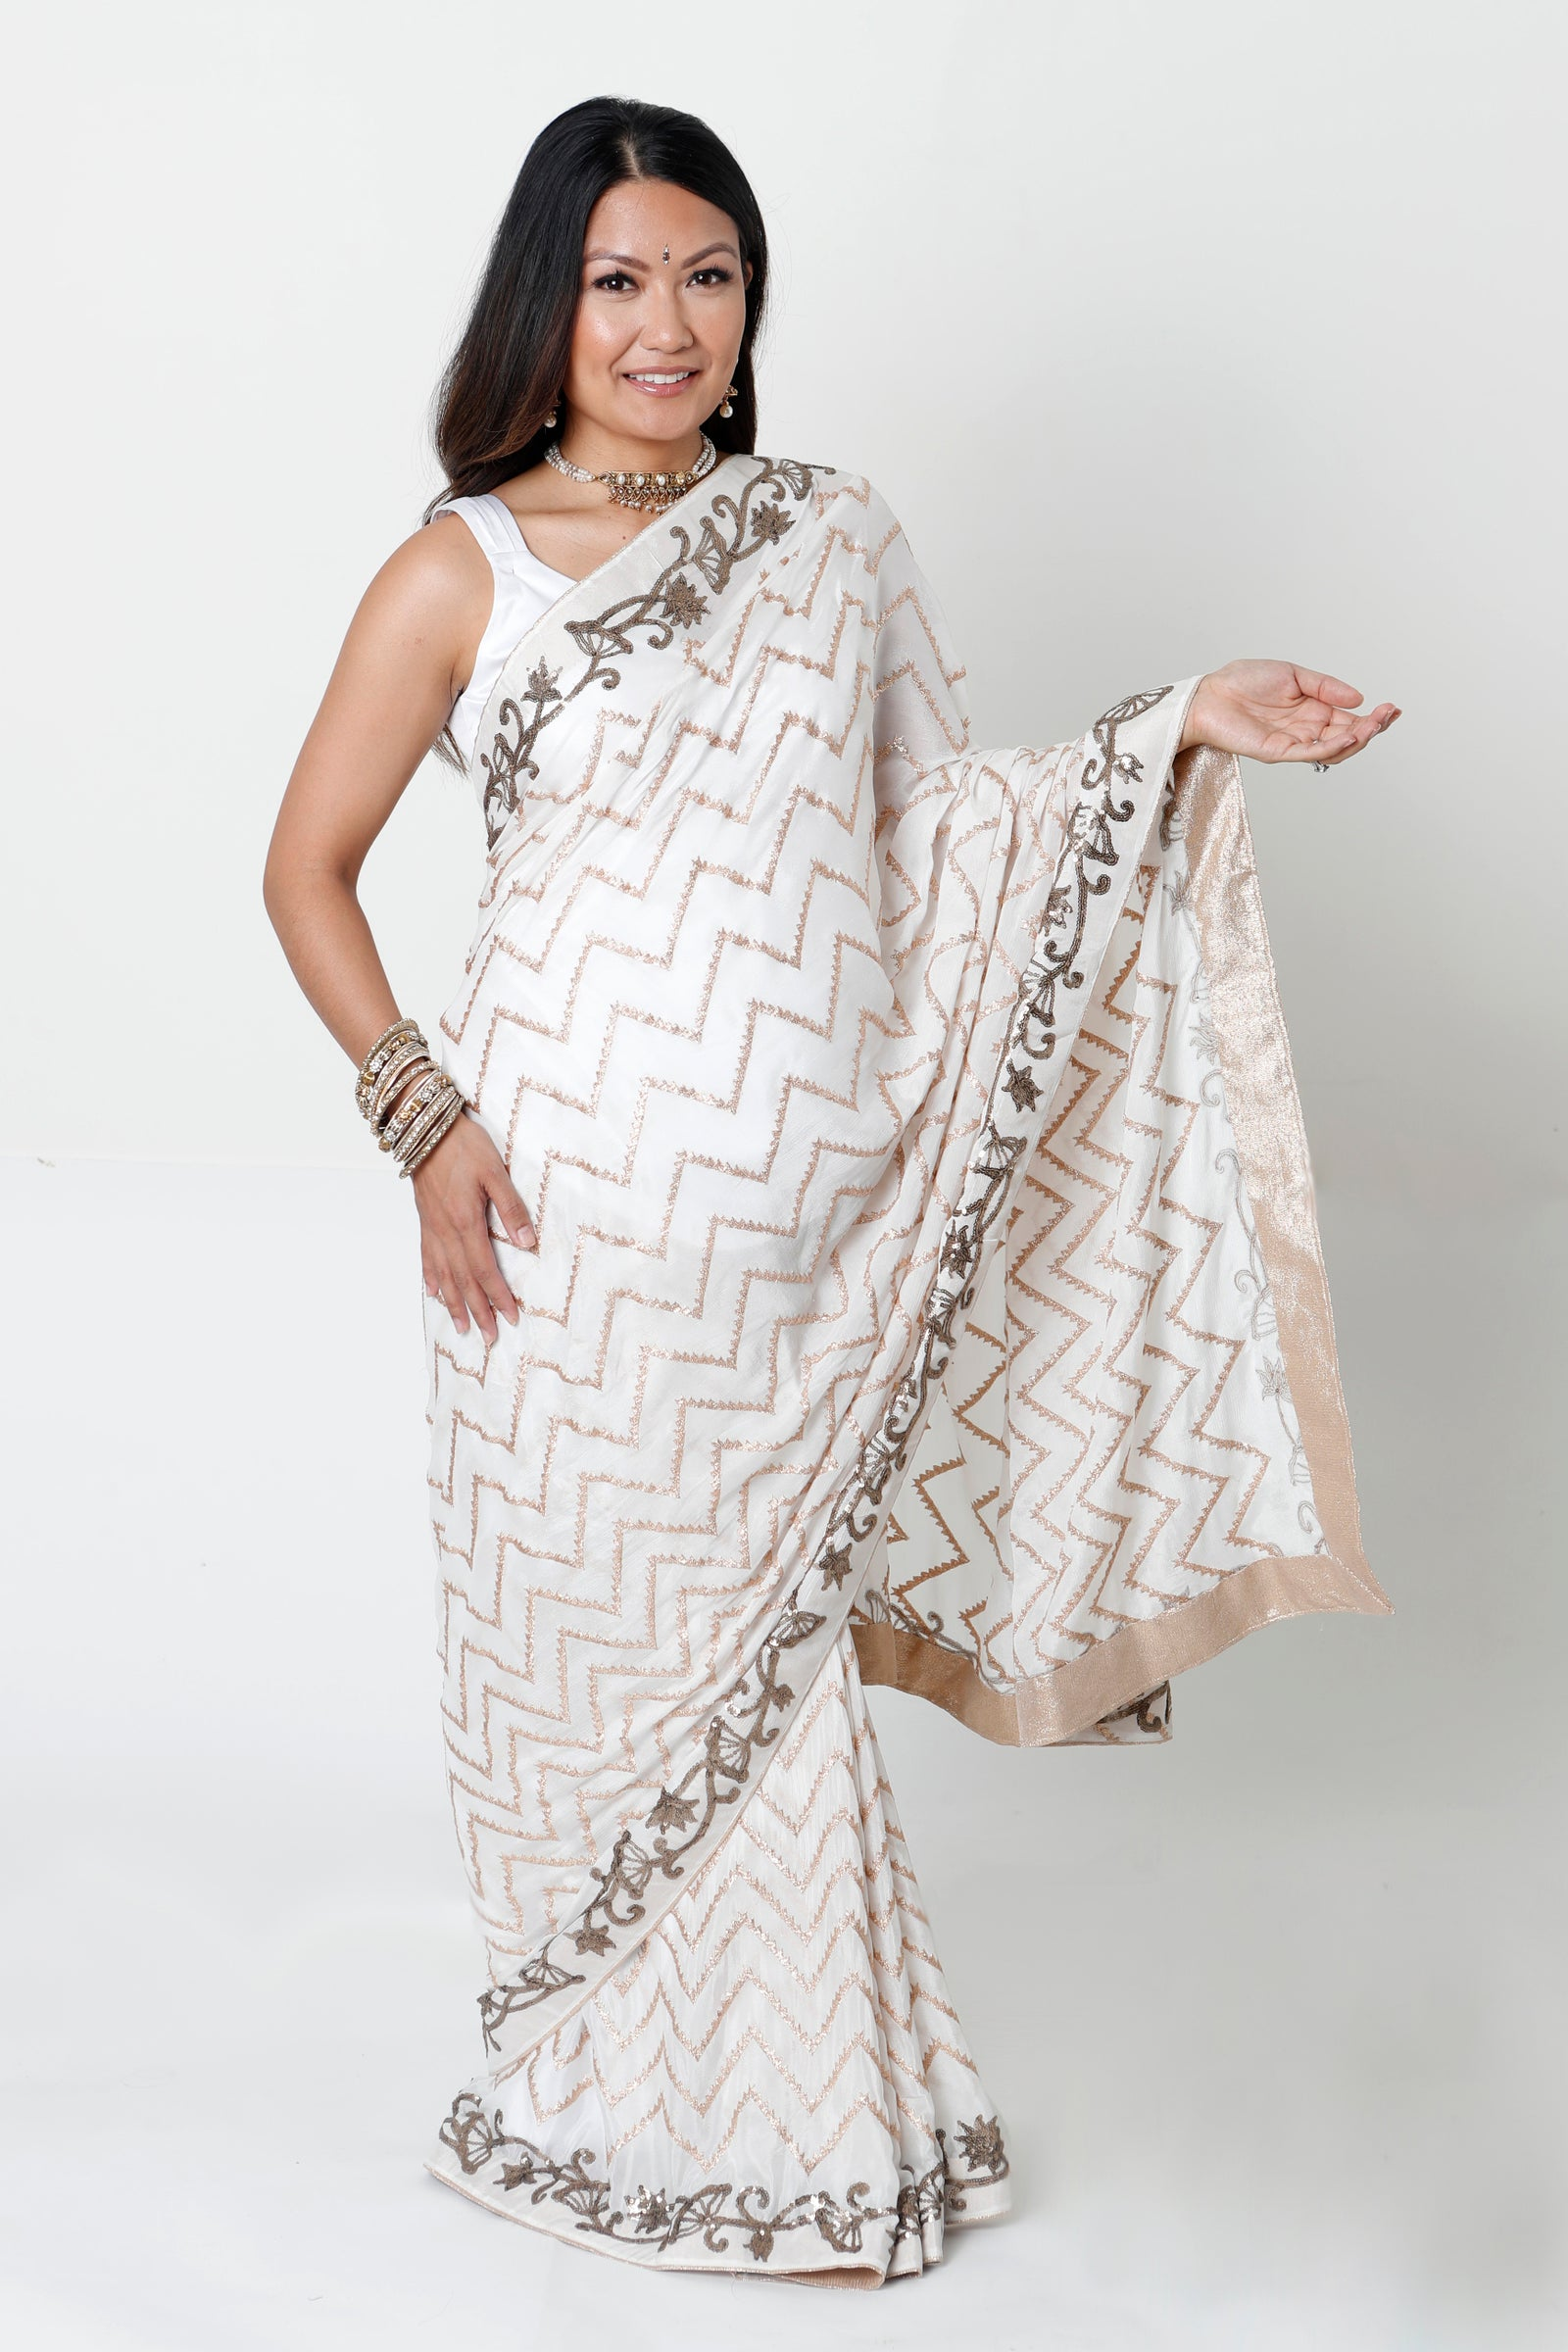 FULL BELLY PANEL MATERNITY SARIS*